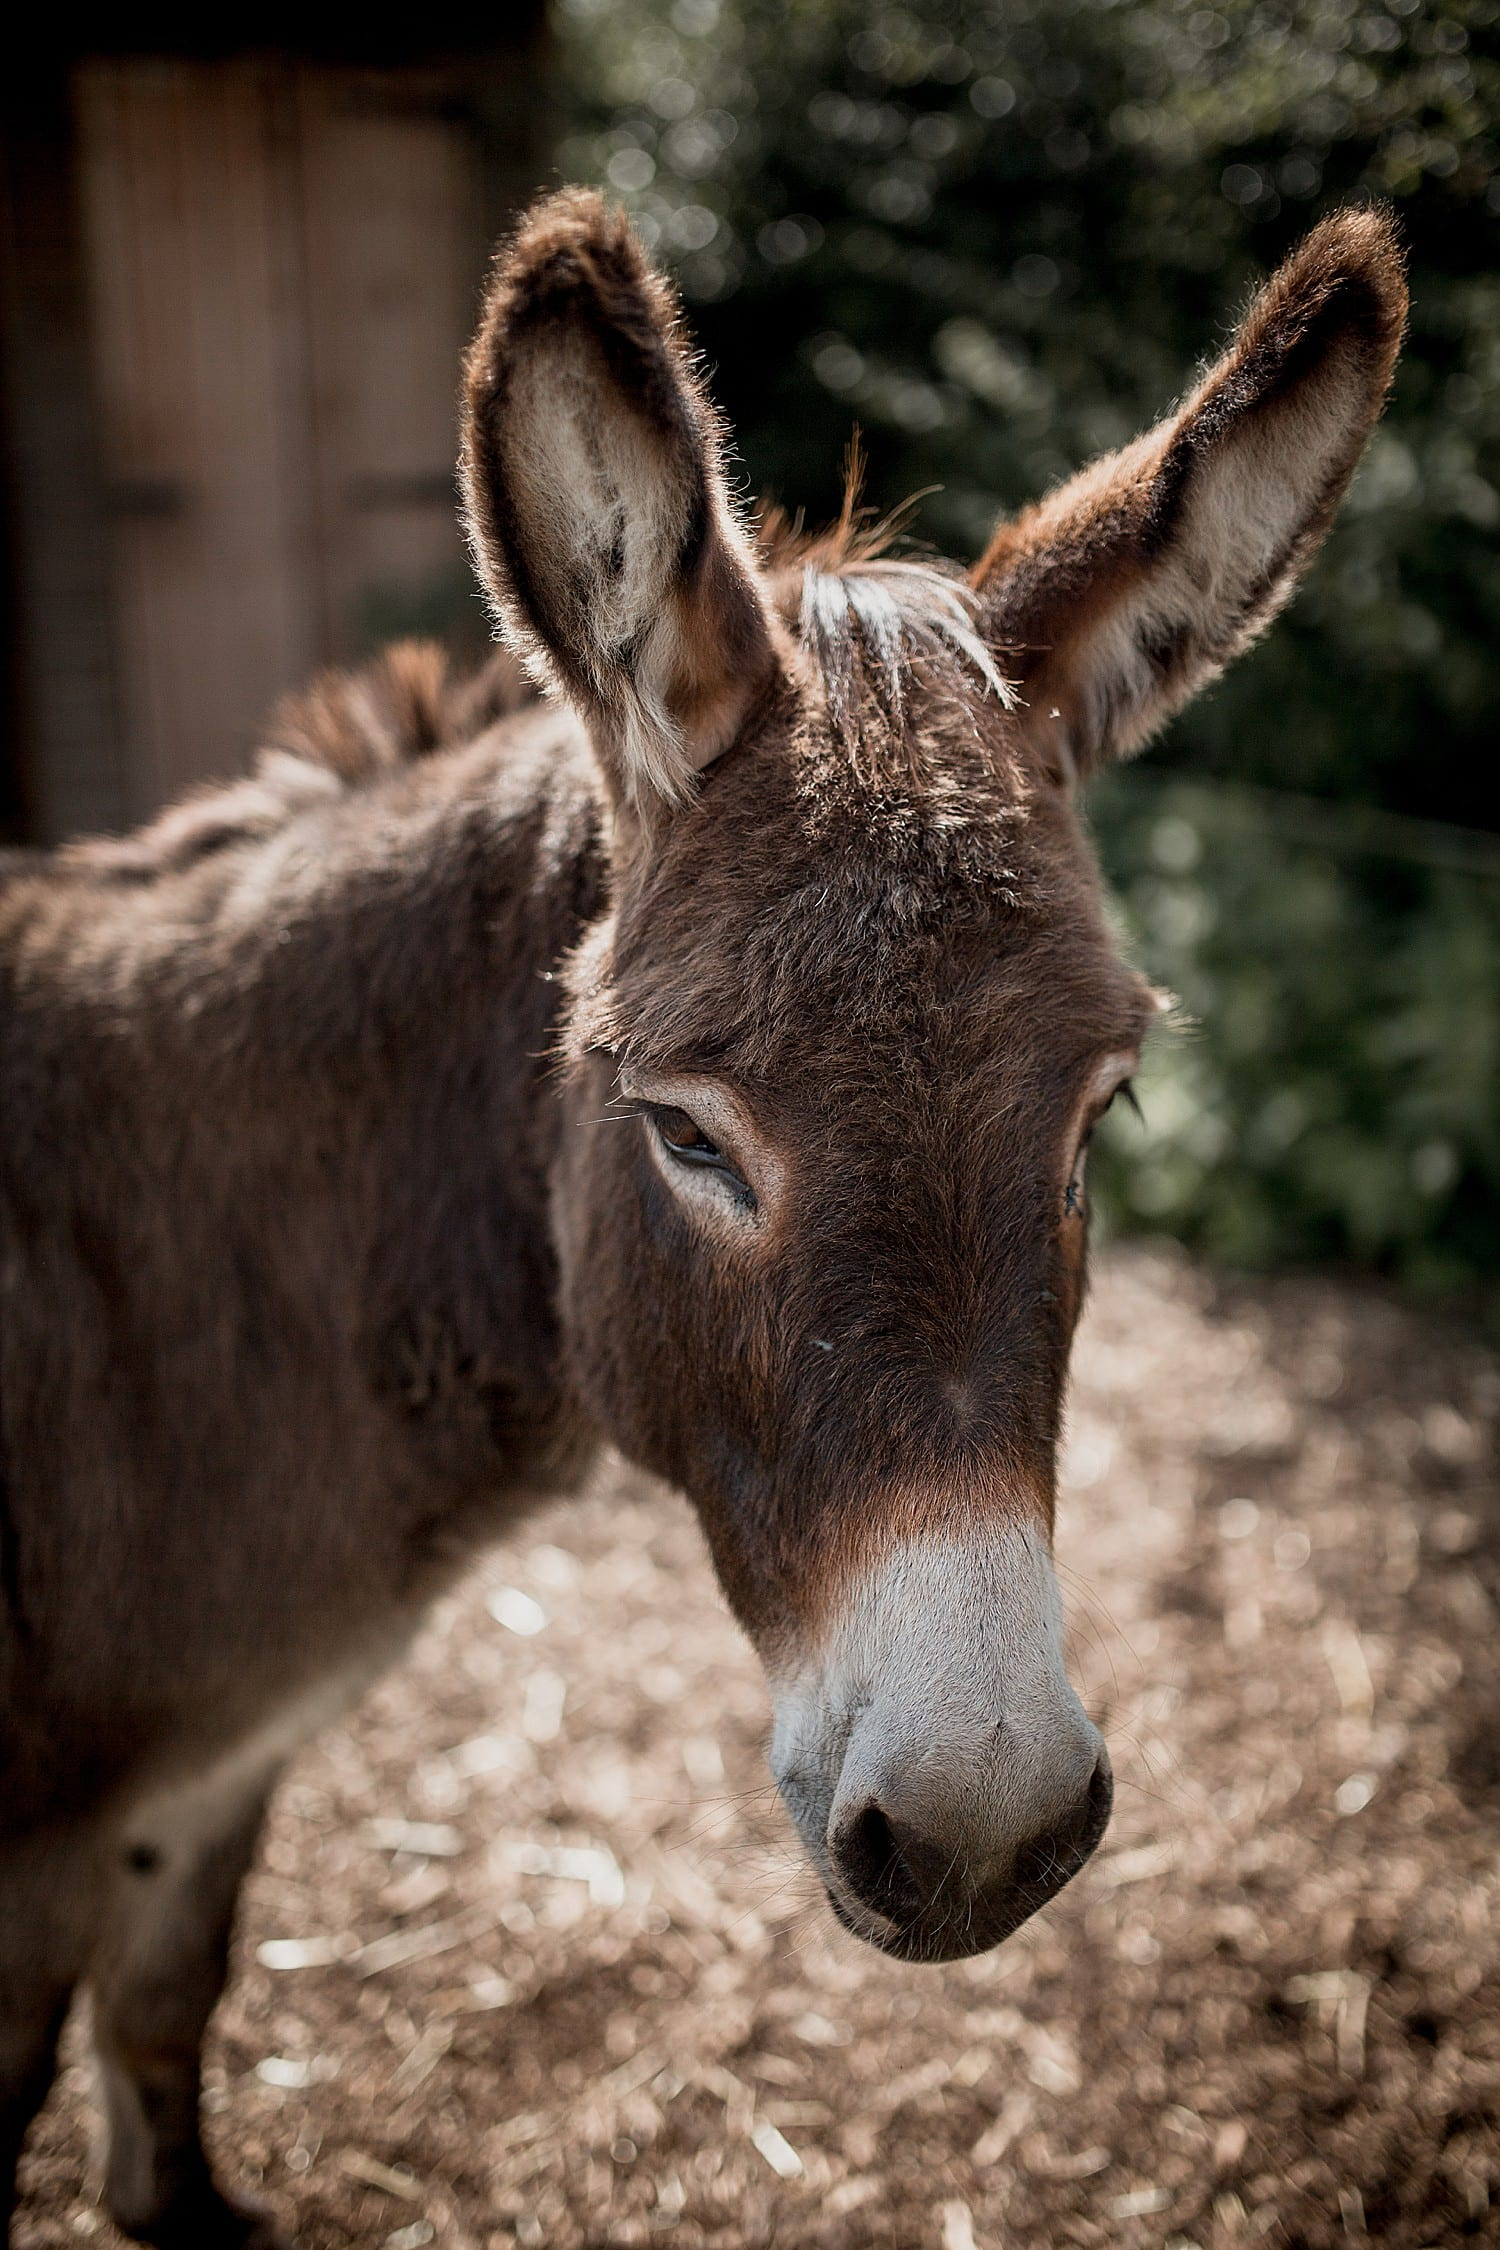 donkey at buddileigh farm